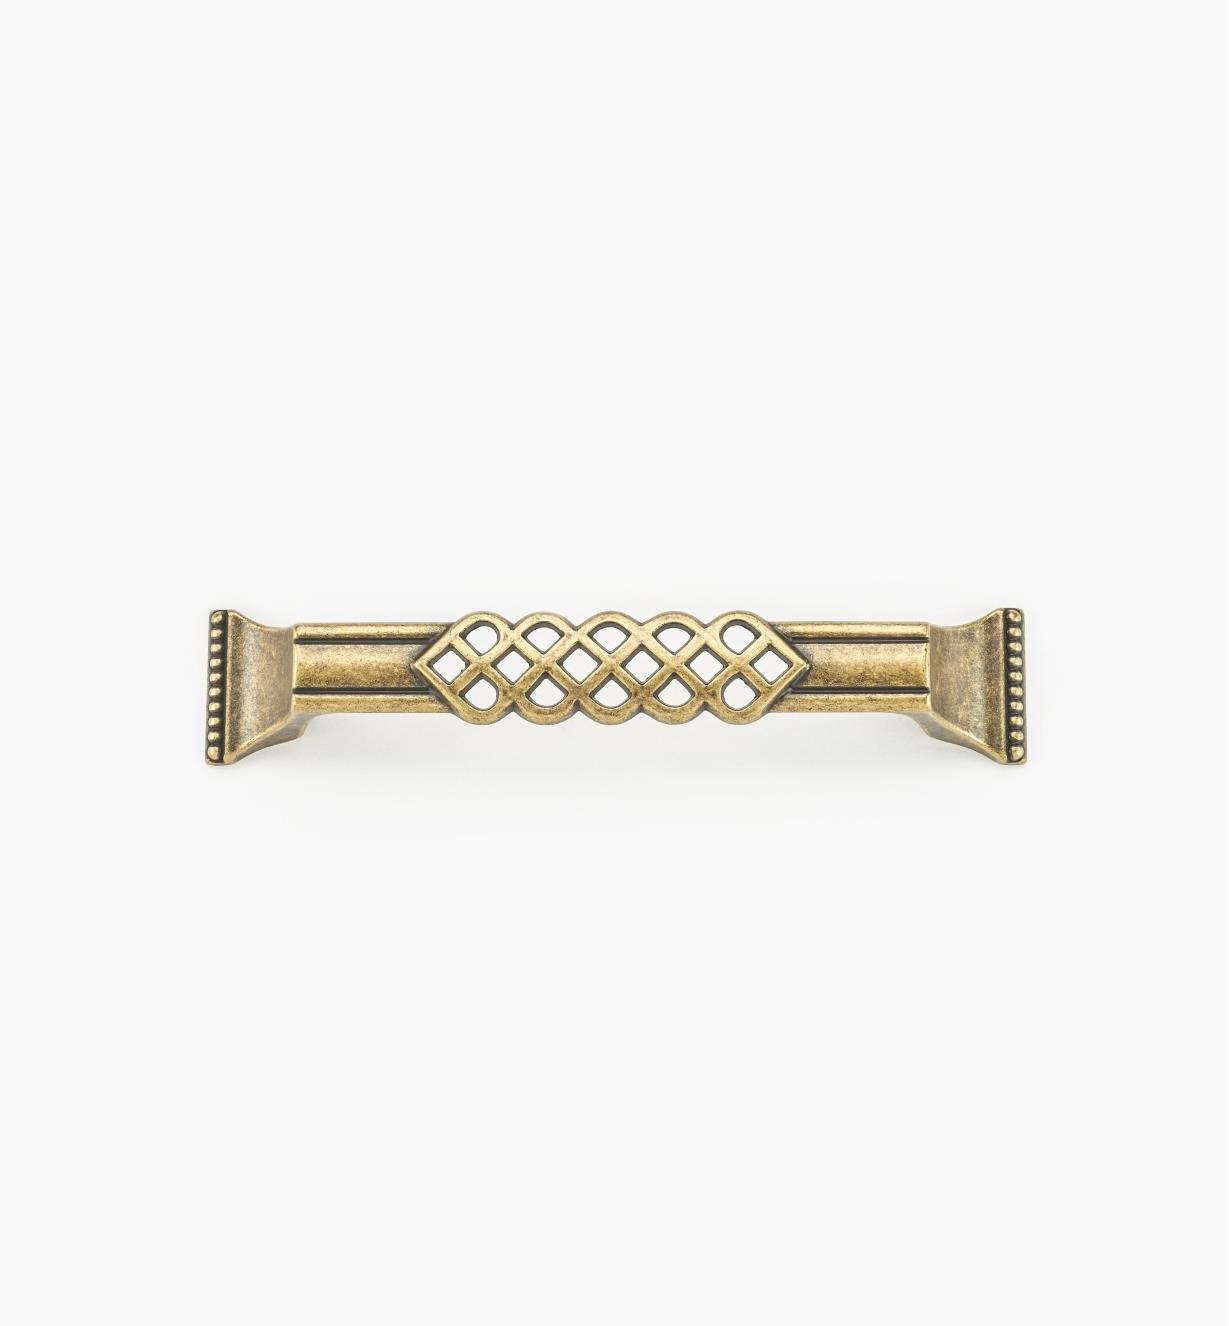 "01A3015 - 6 1/2"" (128mm) Lattice and Bead Handle"